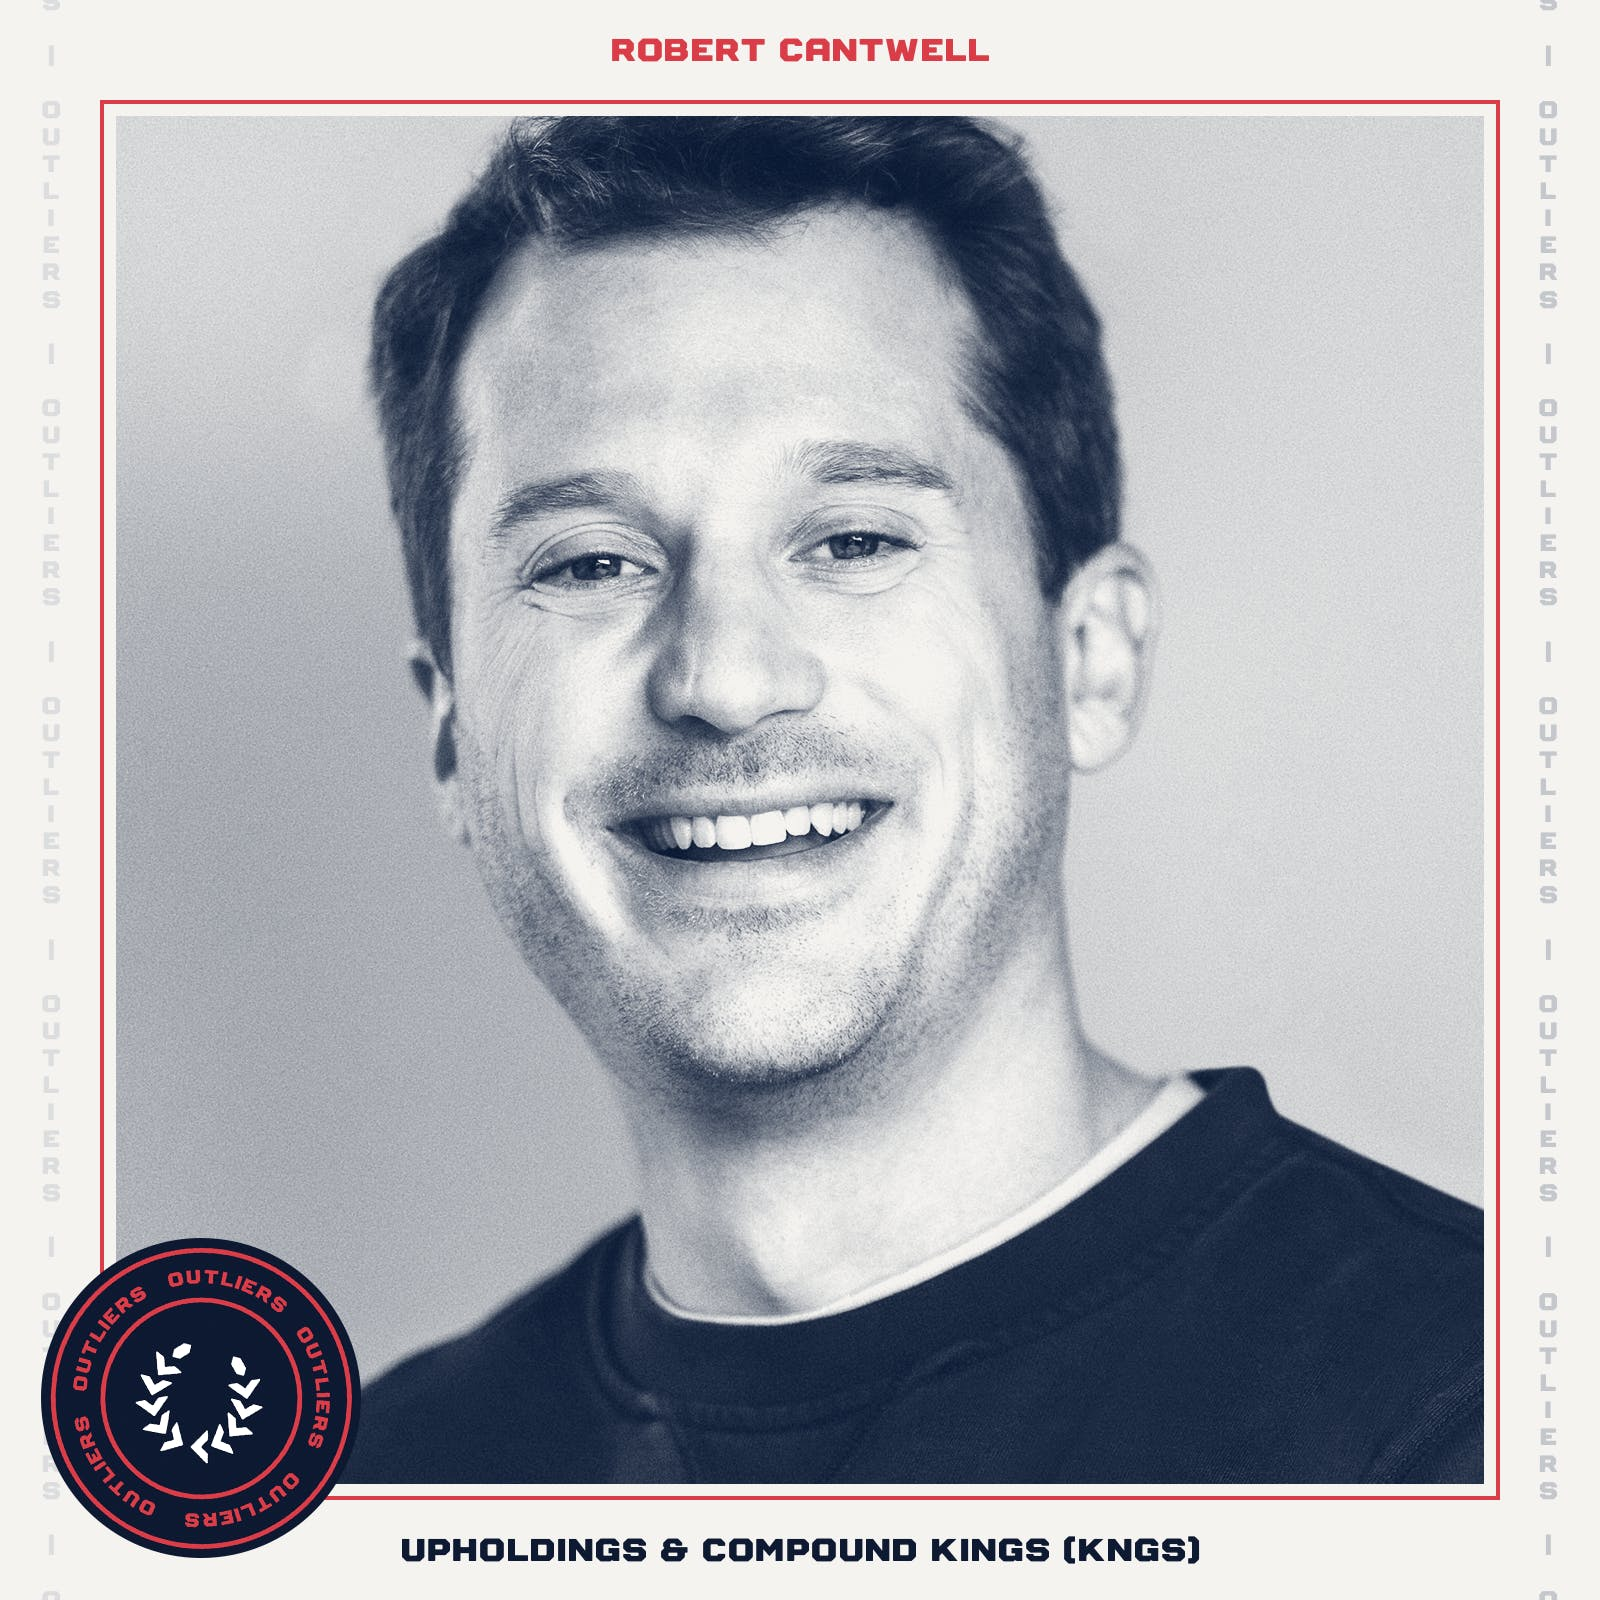 #23 Robert Cantwell, CEO of Upholdings, on Launching the Compound Kings ETF and Building an Investment Process